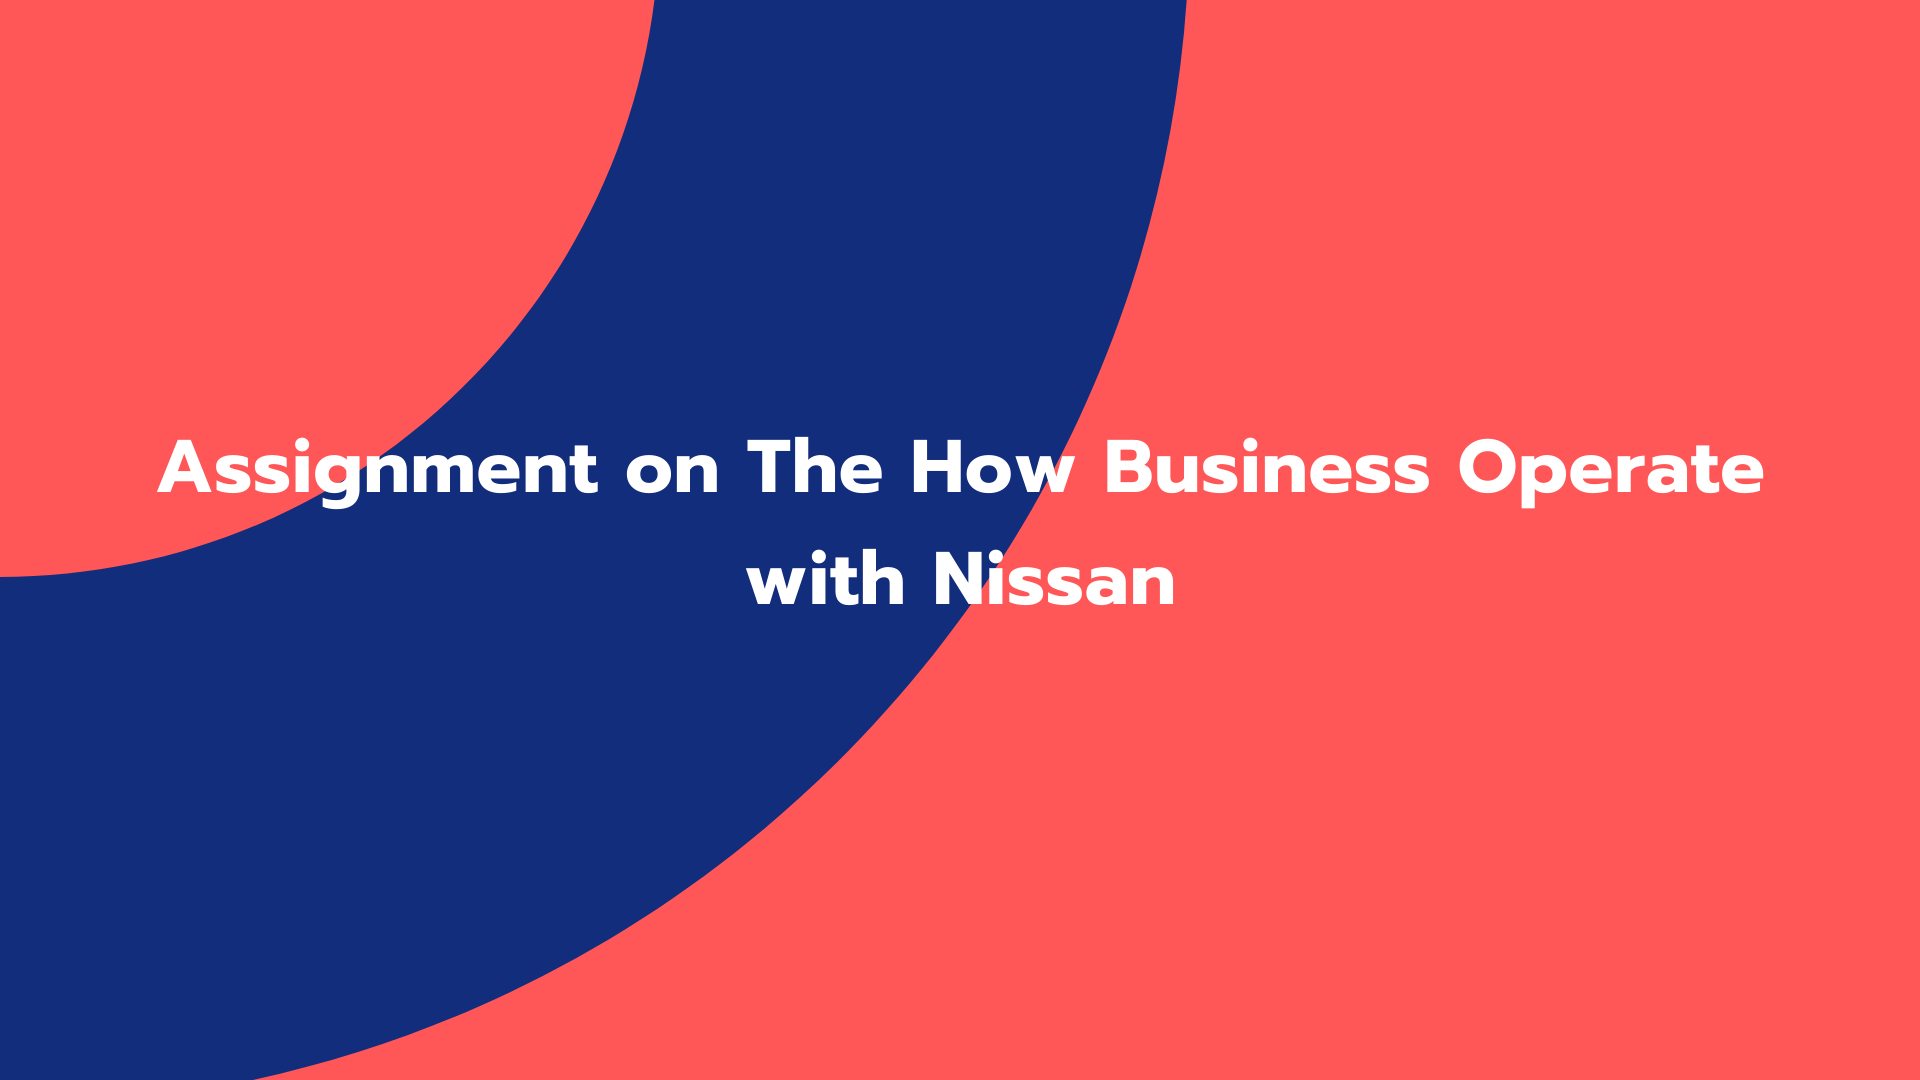 Assignment on The How Business Operate with Nissan